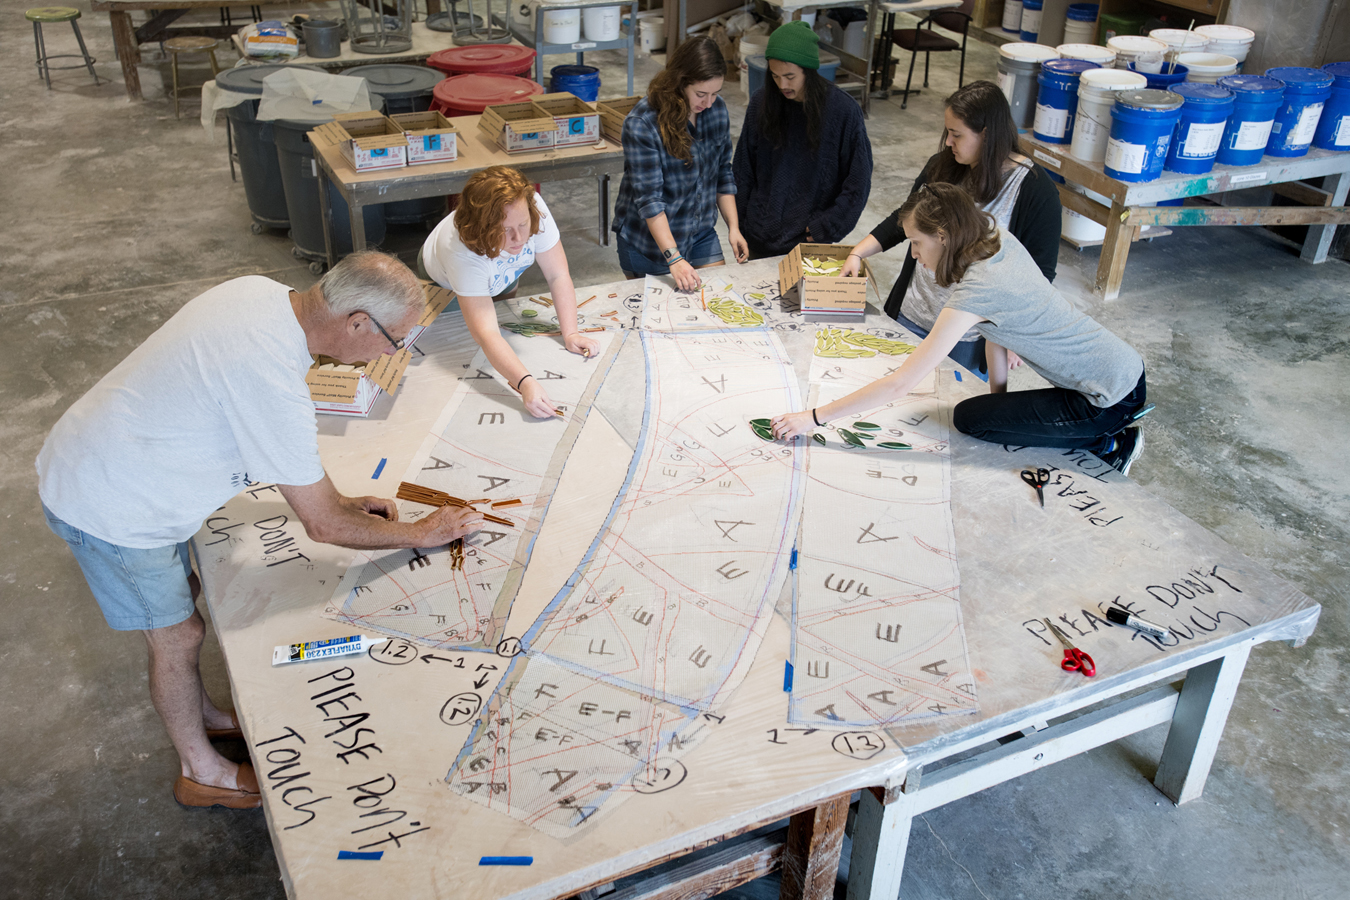 Students working on the transfer of the mosaic design to the mesh blanket.